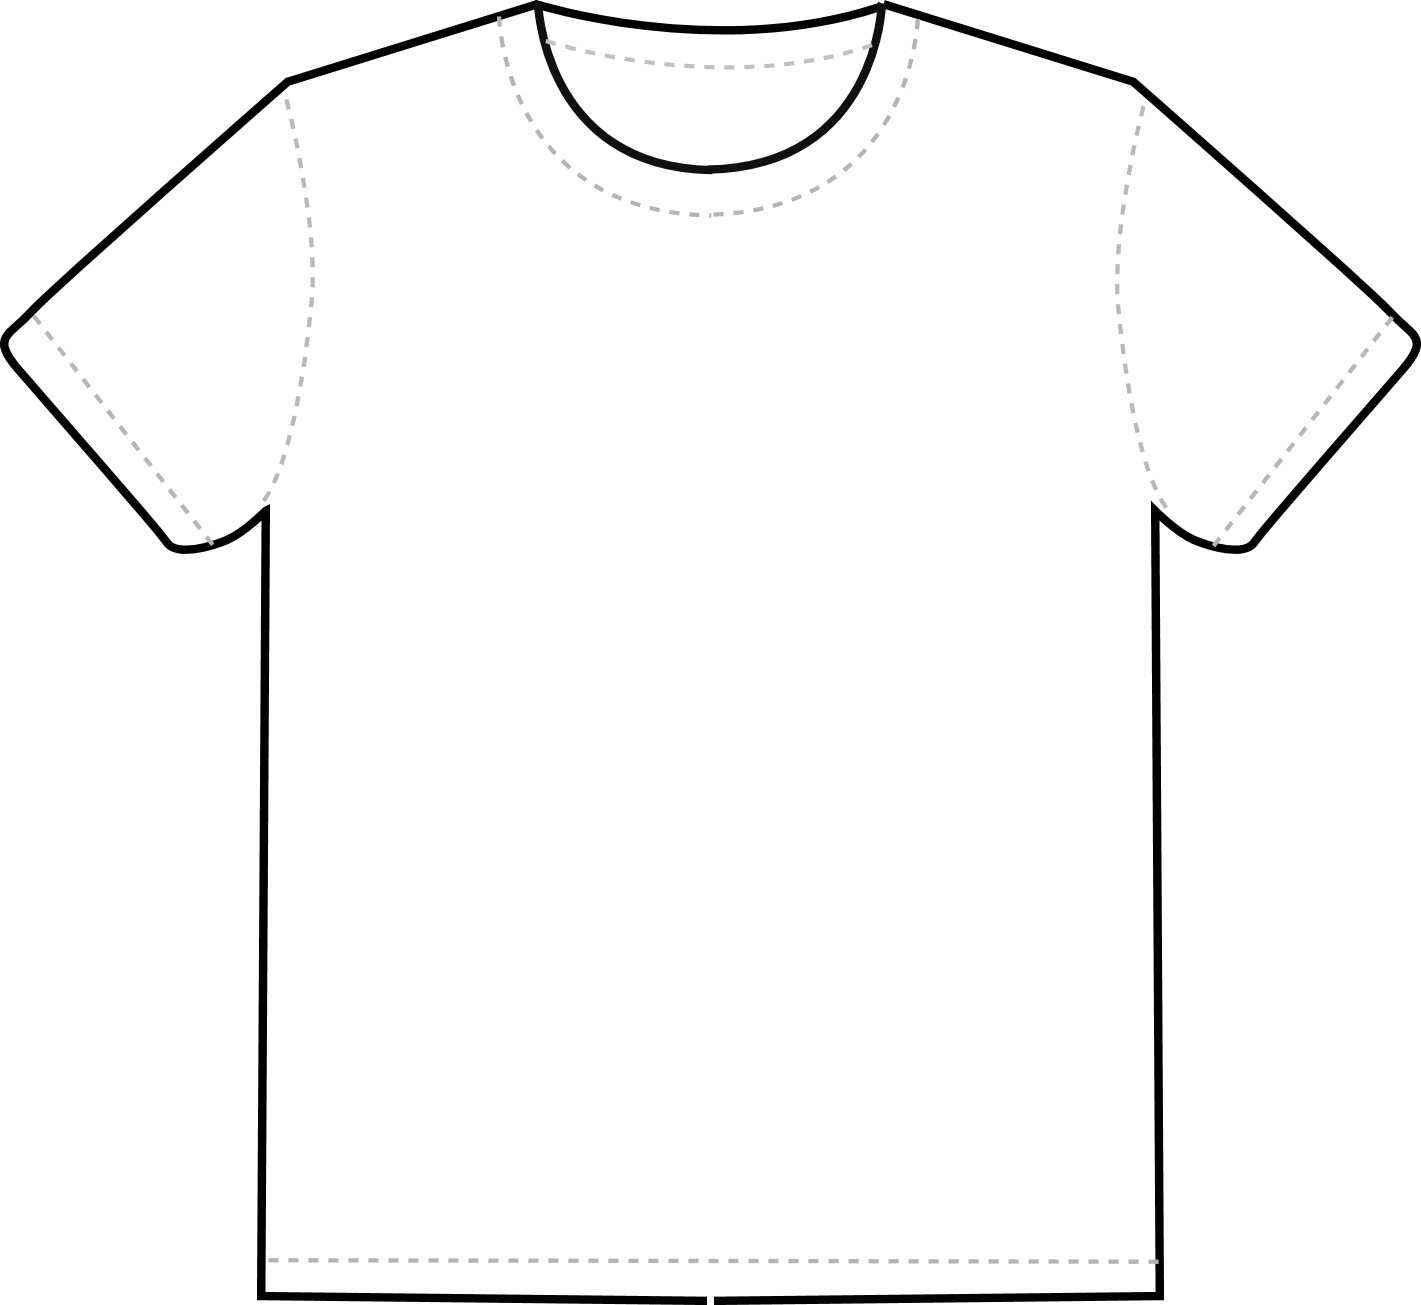 T Shirt Design Template | Is Shirt